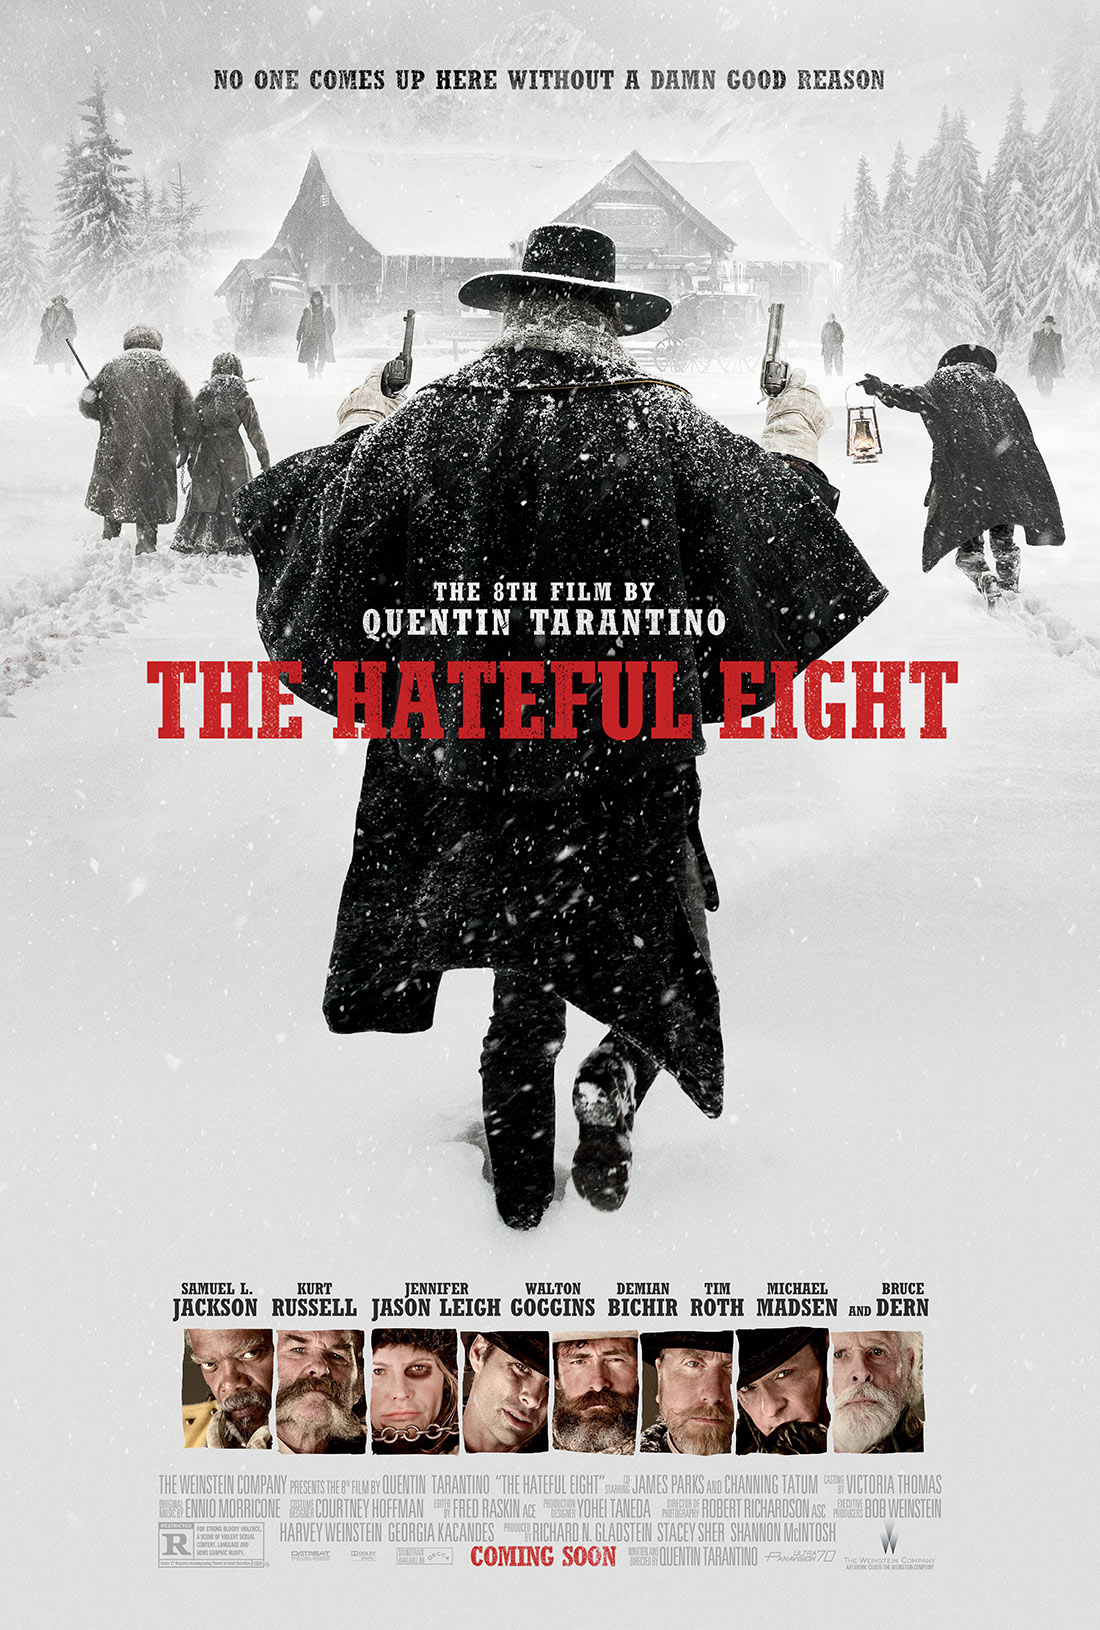 the-hateful-eight-film-movie-poster-images